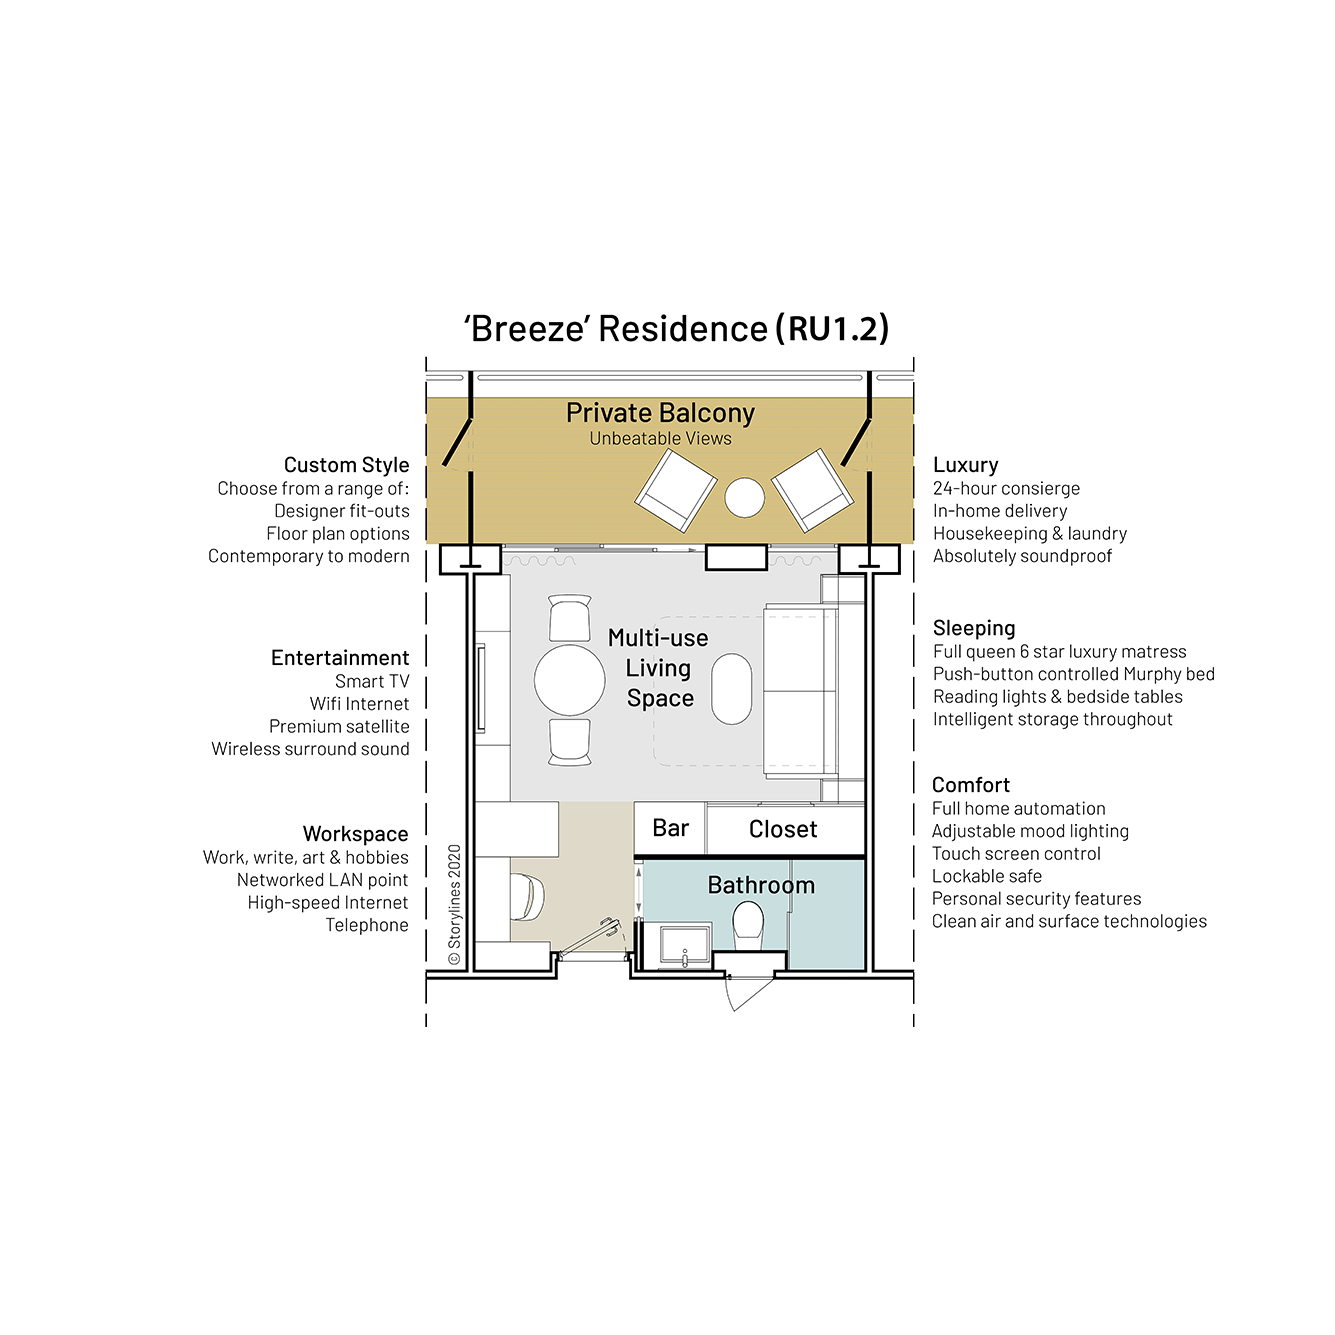 Floor plan for apartment on a residential showing the layout of furniture, rooms and balcony